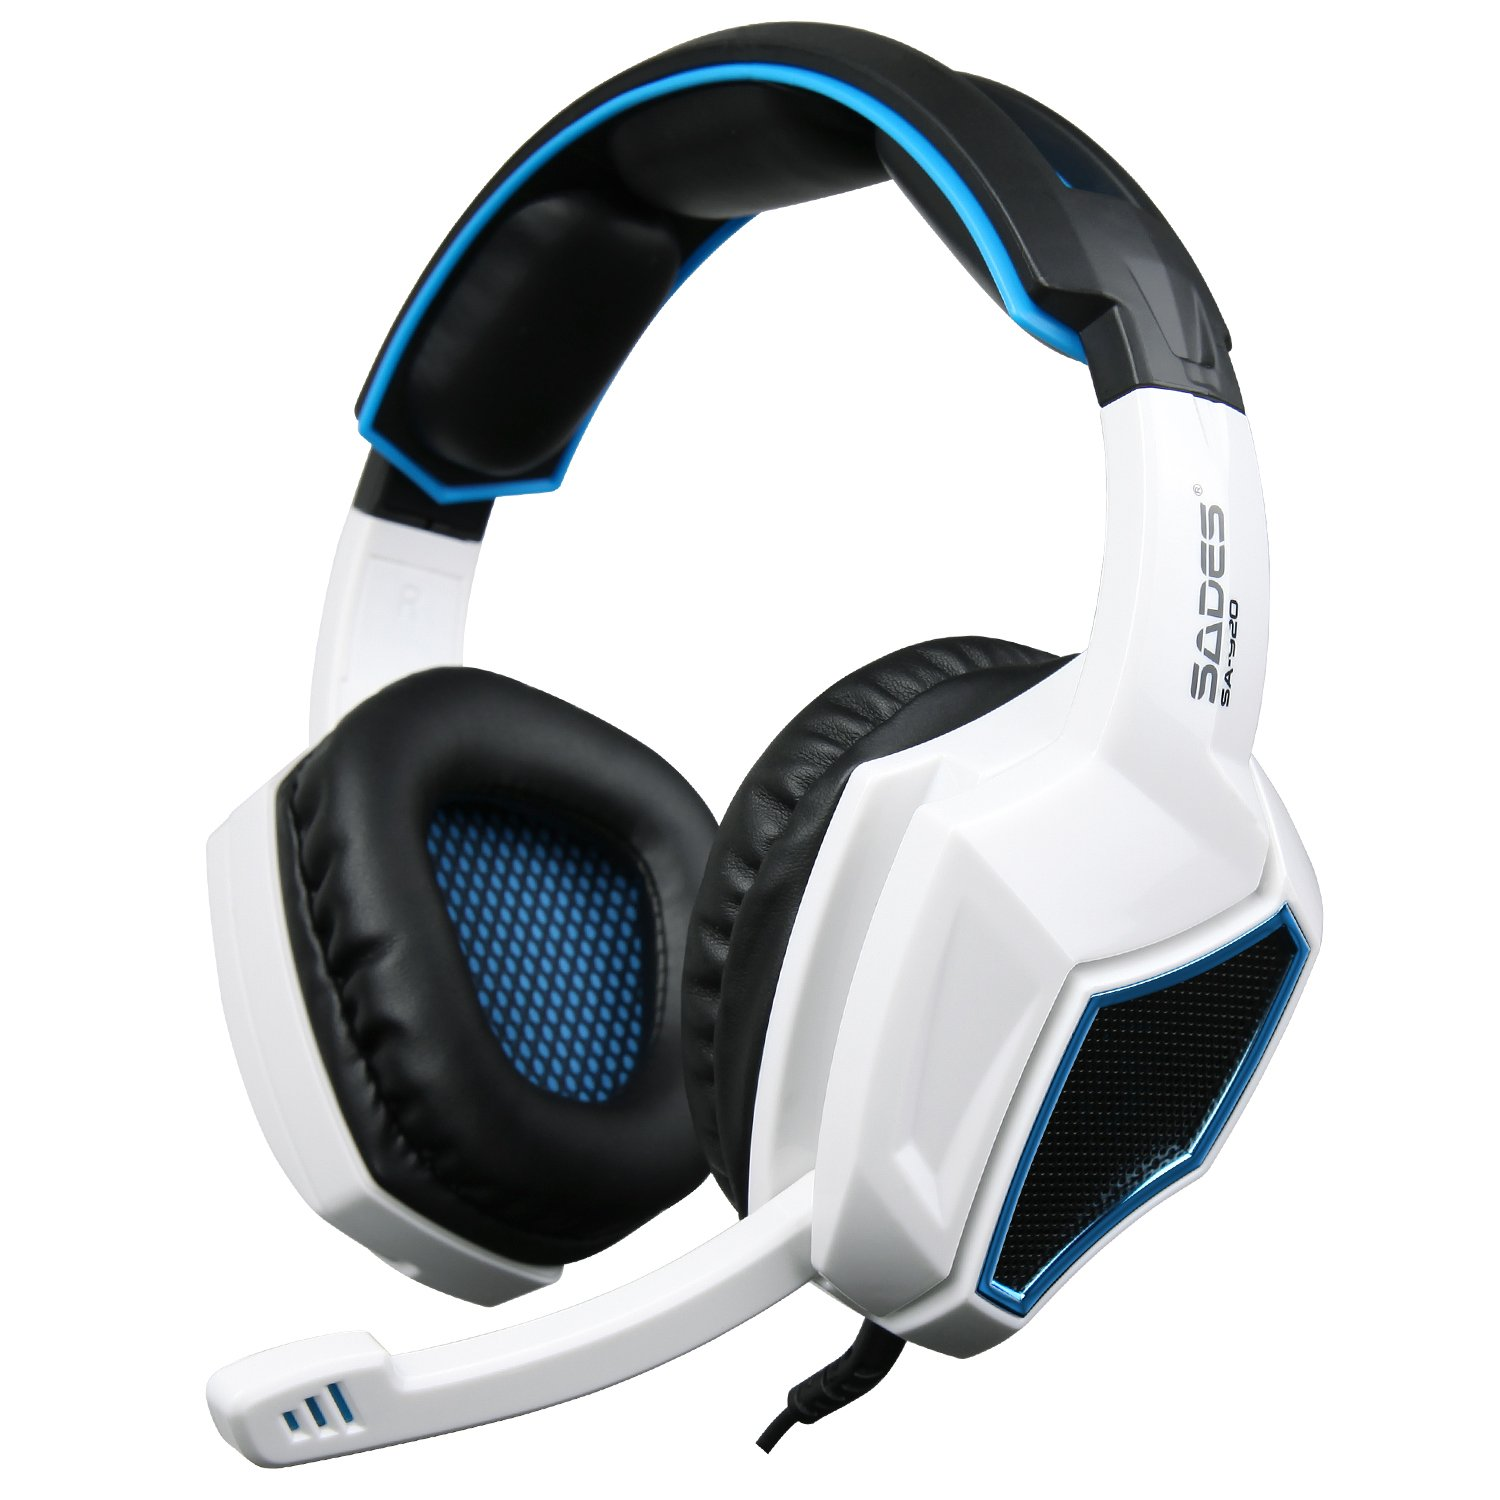 [2016 New Updated]Sades SA920 Wired Stereo Gaming Headset Over Ear Headphones with Microphone for Xbox One / Xbox 360 / PS4 / PC /Cell phones / iPad(Black/White)